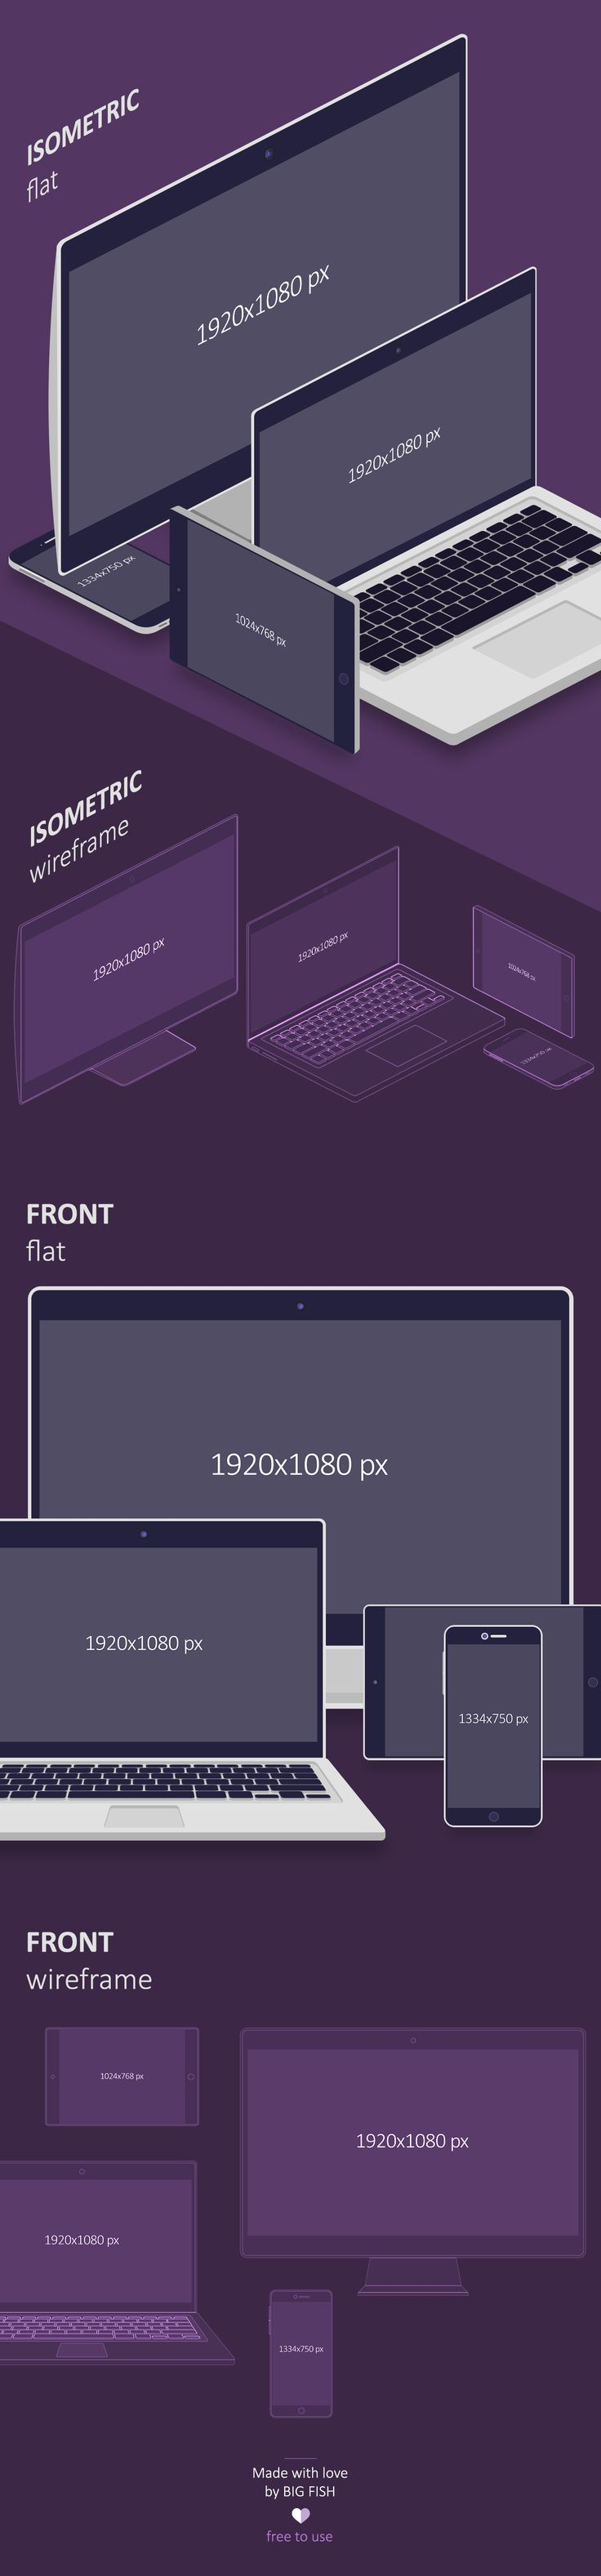 Responsive mockup tools for our projects and portfolios(& yours too) :)